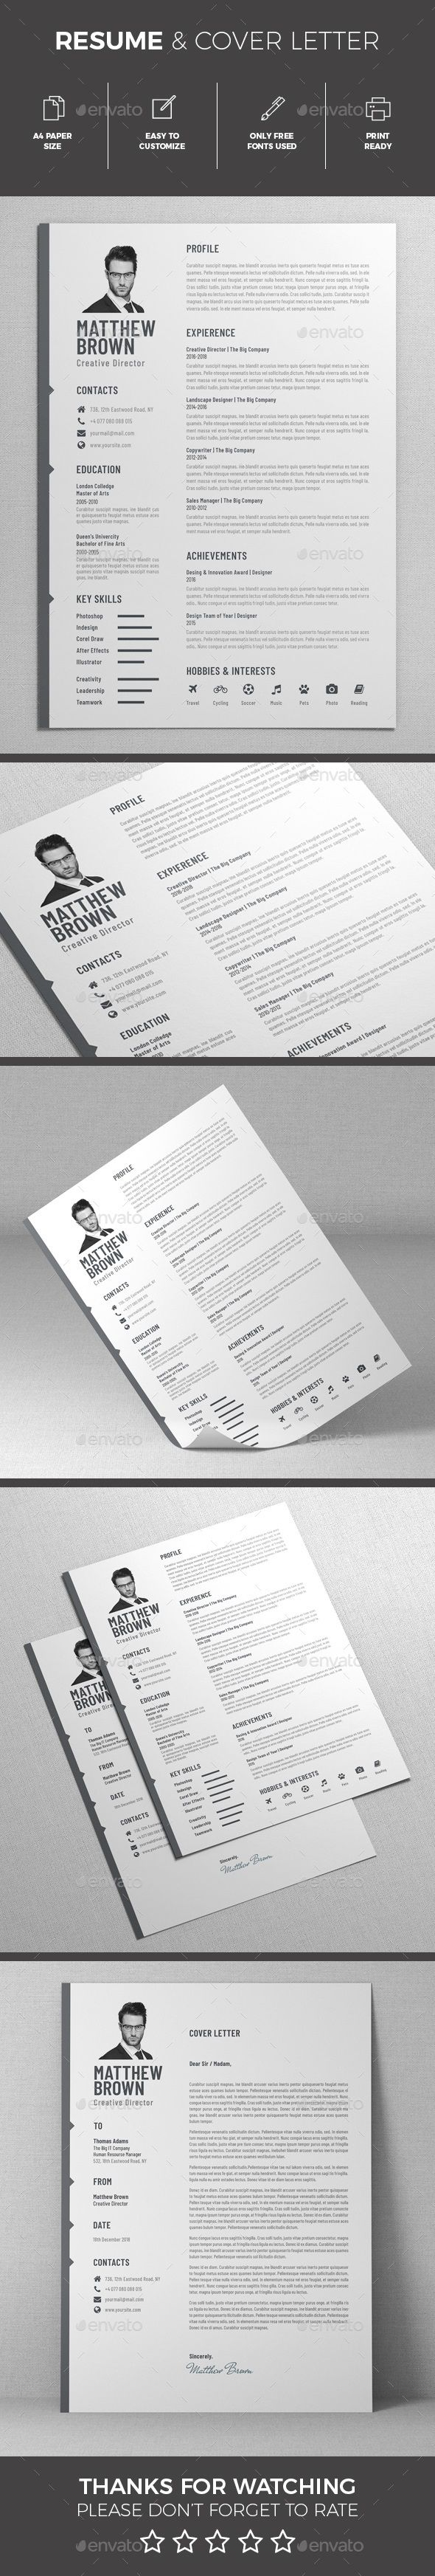 Resume Template InDesign INDD, MS Word Easy To Customize